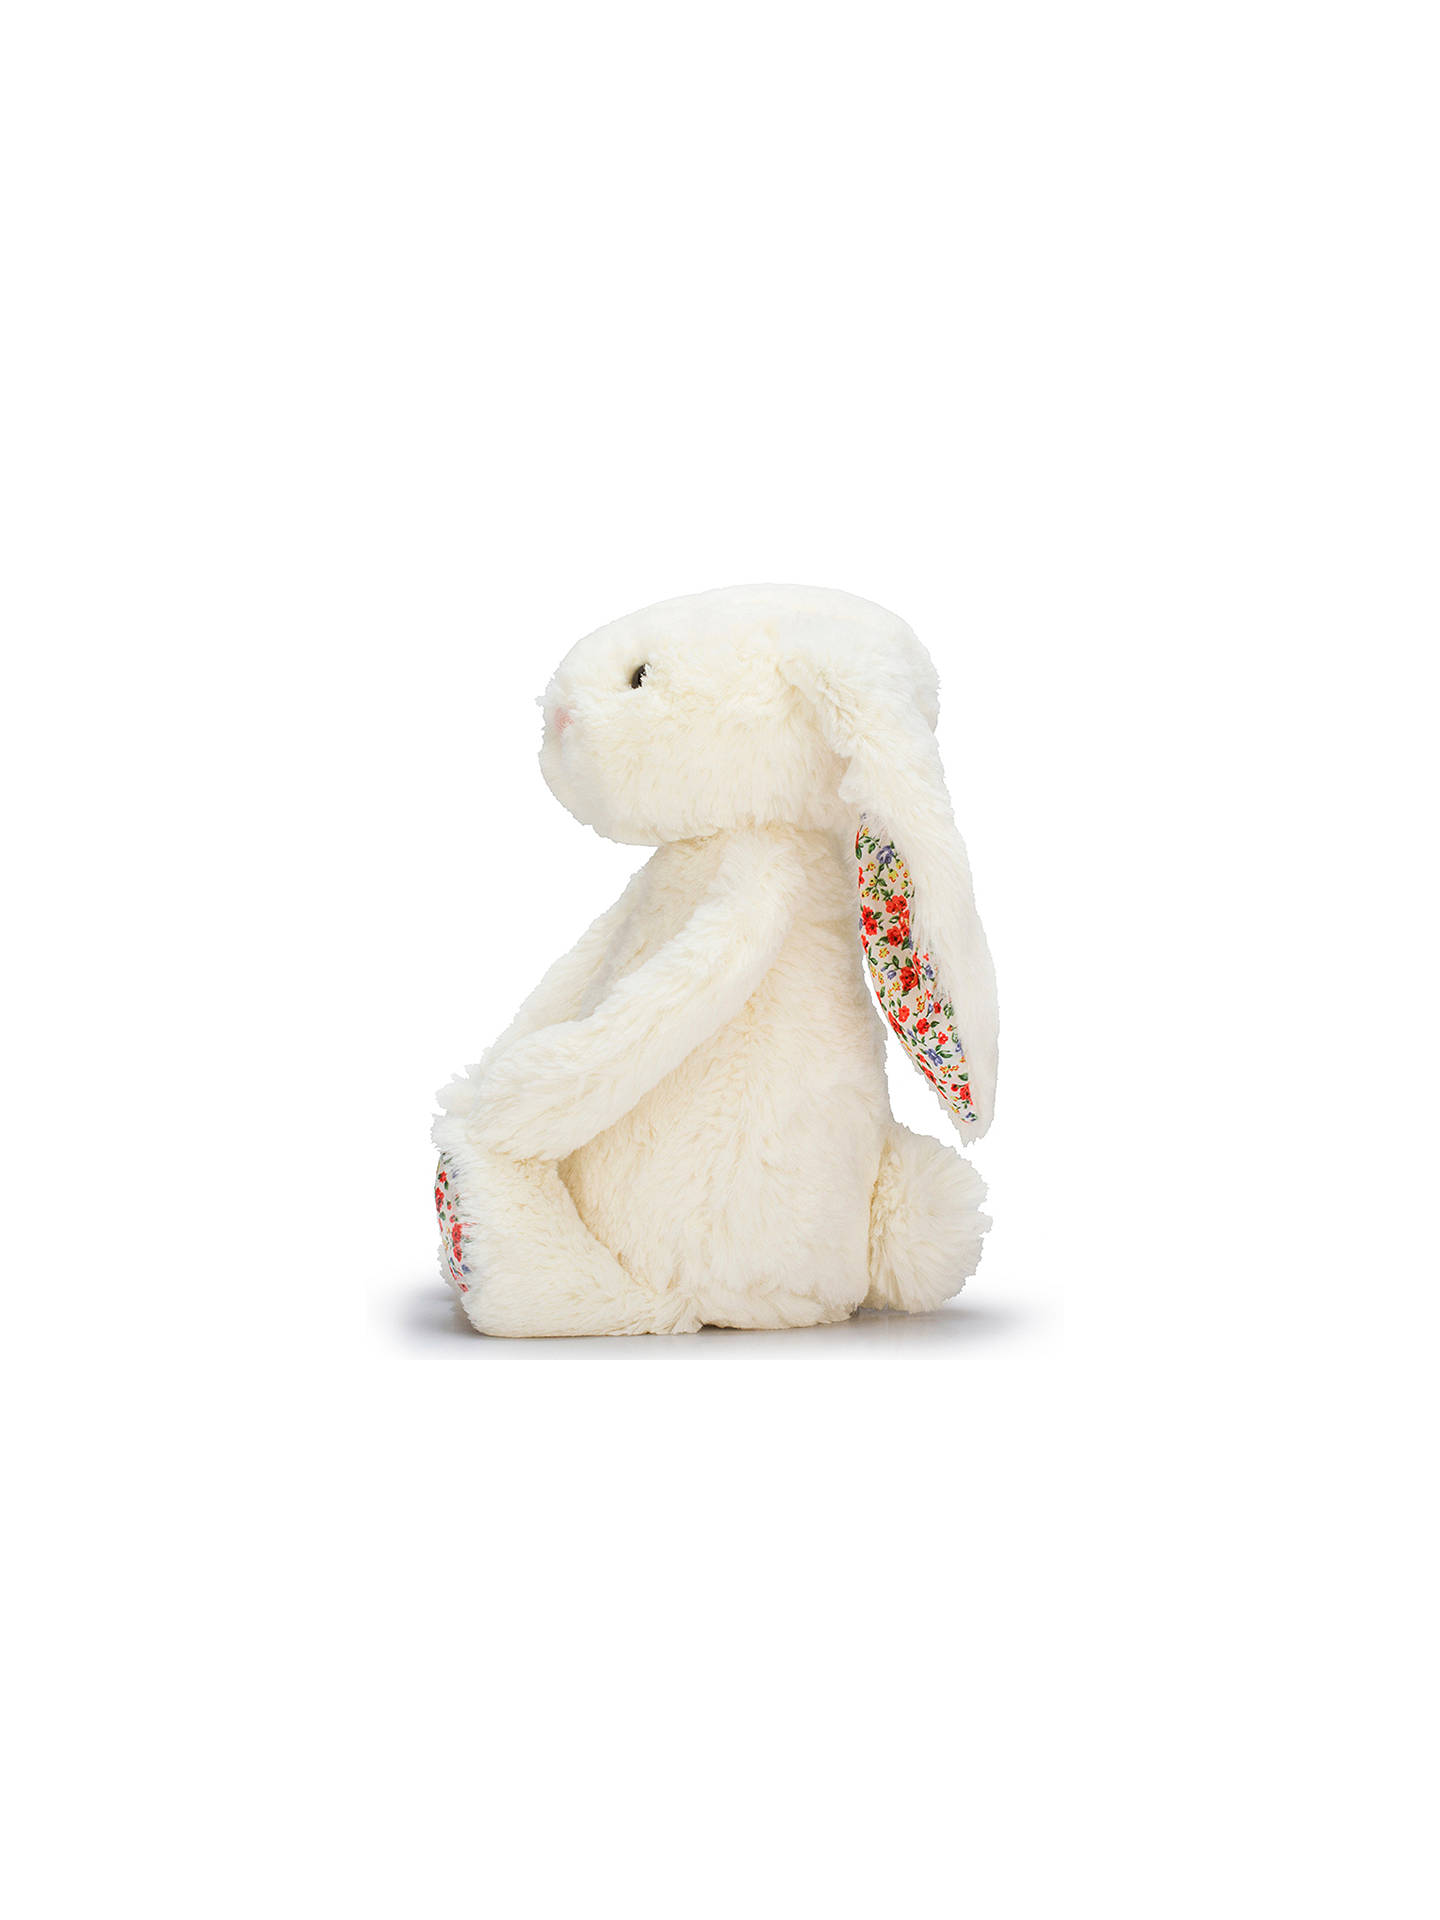 Buy Jellycat Blossom Bunny Plush Soft Toy, Large, Cream Online at johnlewis.com